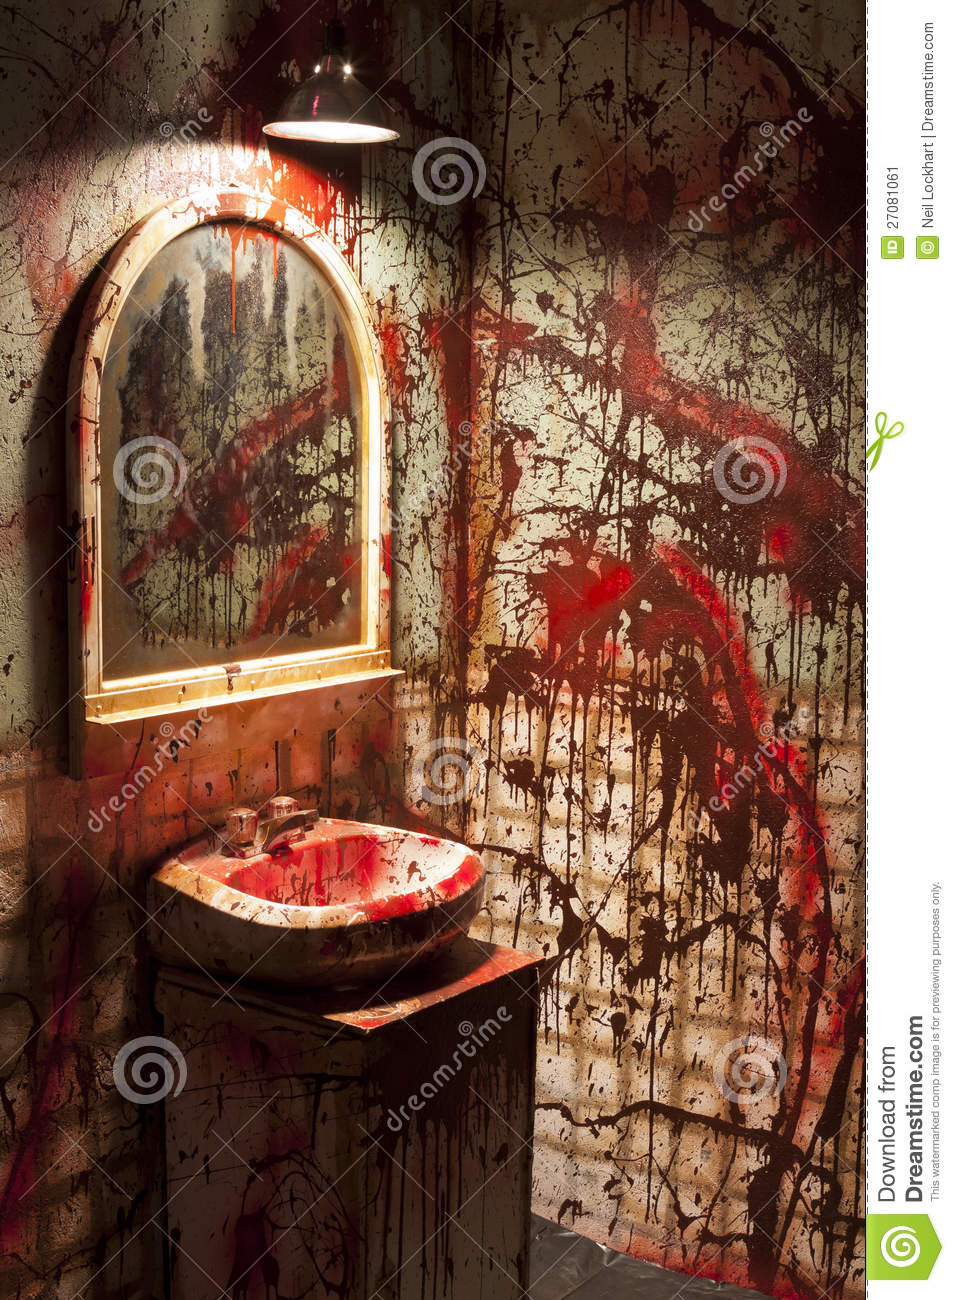 Bloody Bathroom Set Fake Stock Image Image Of Restroom